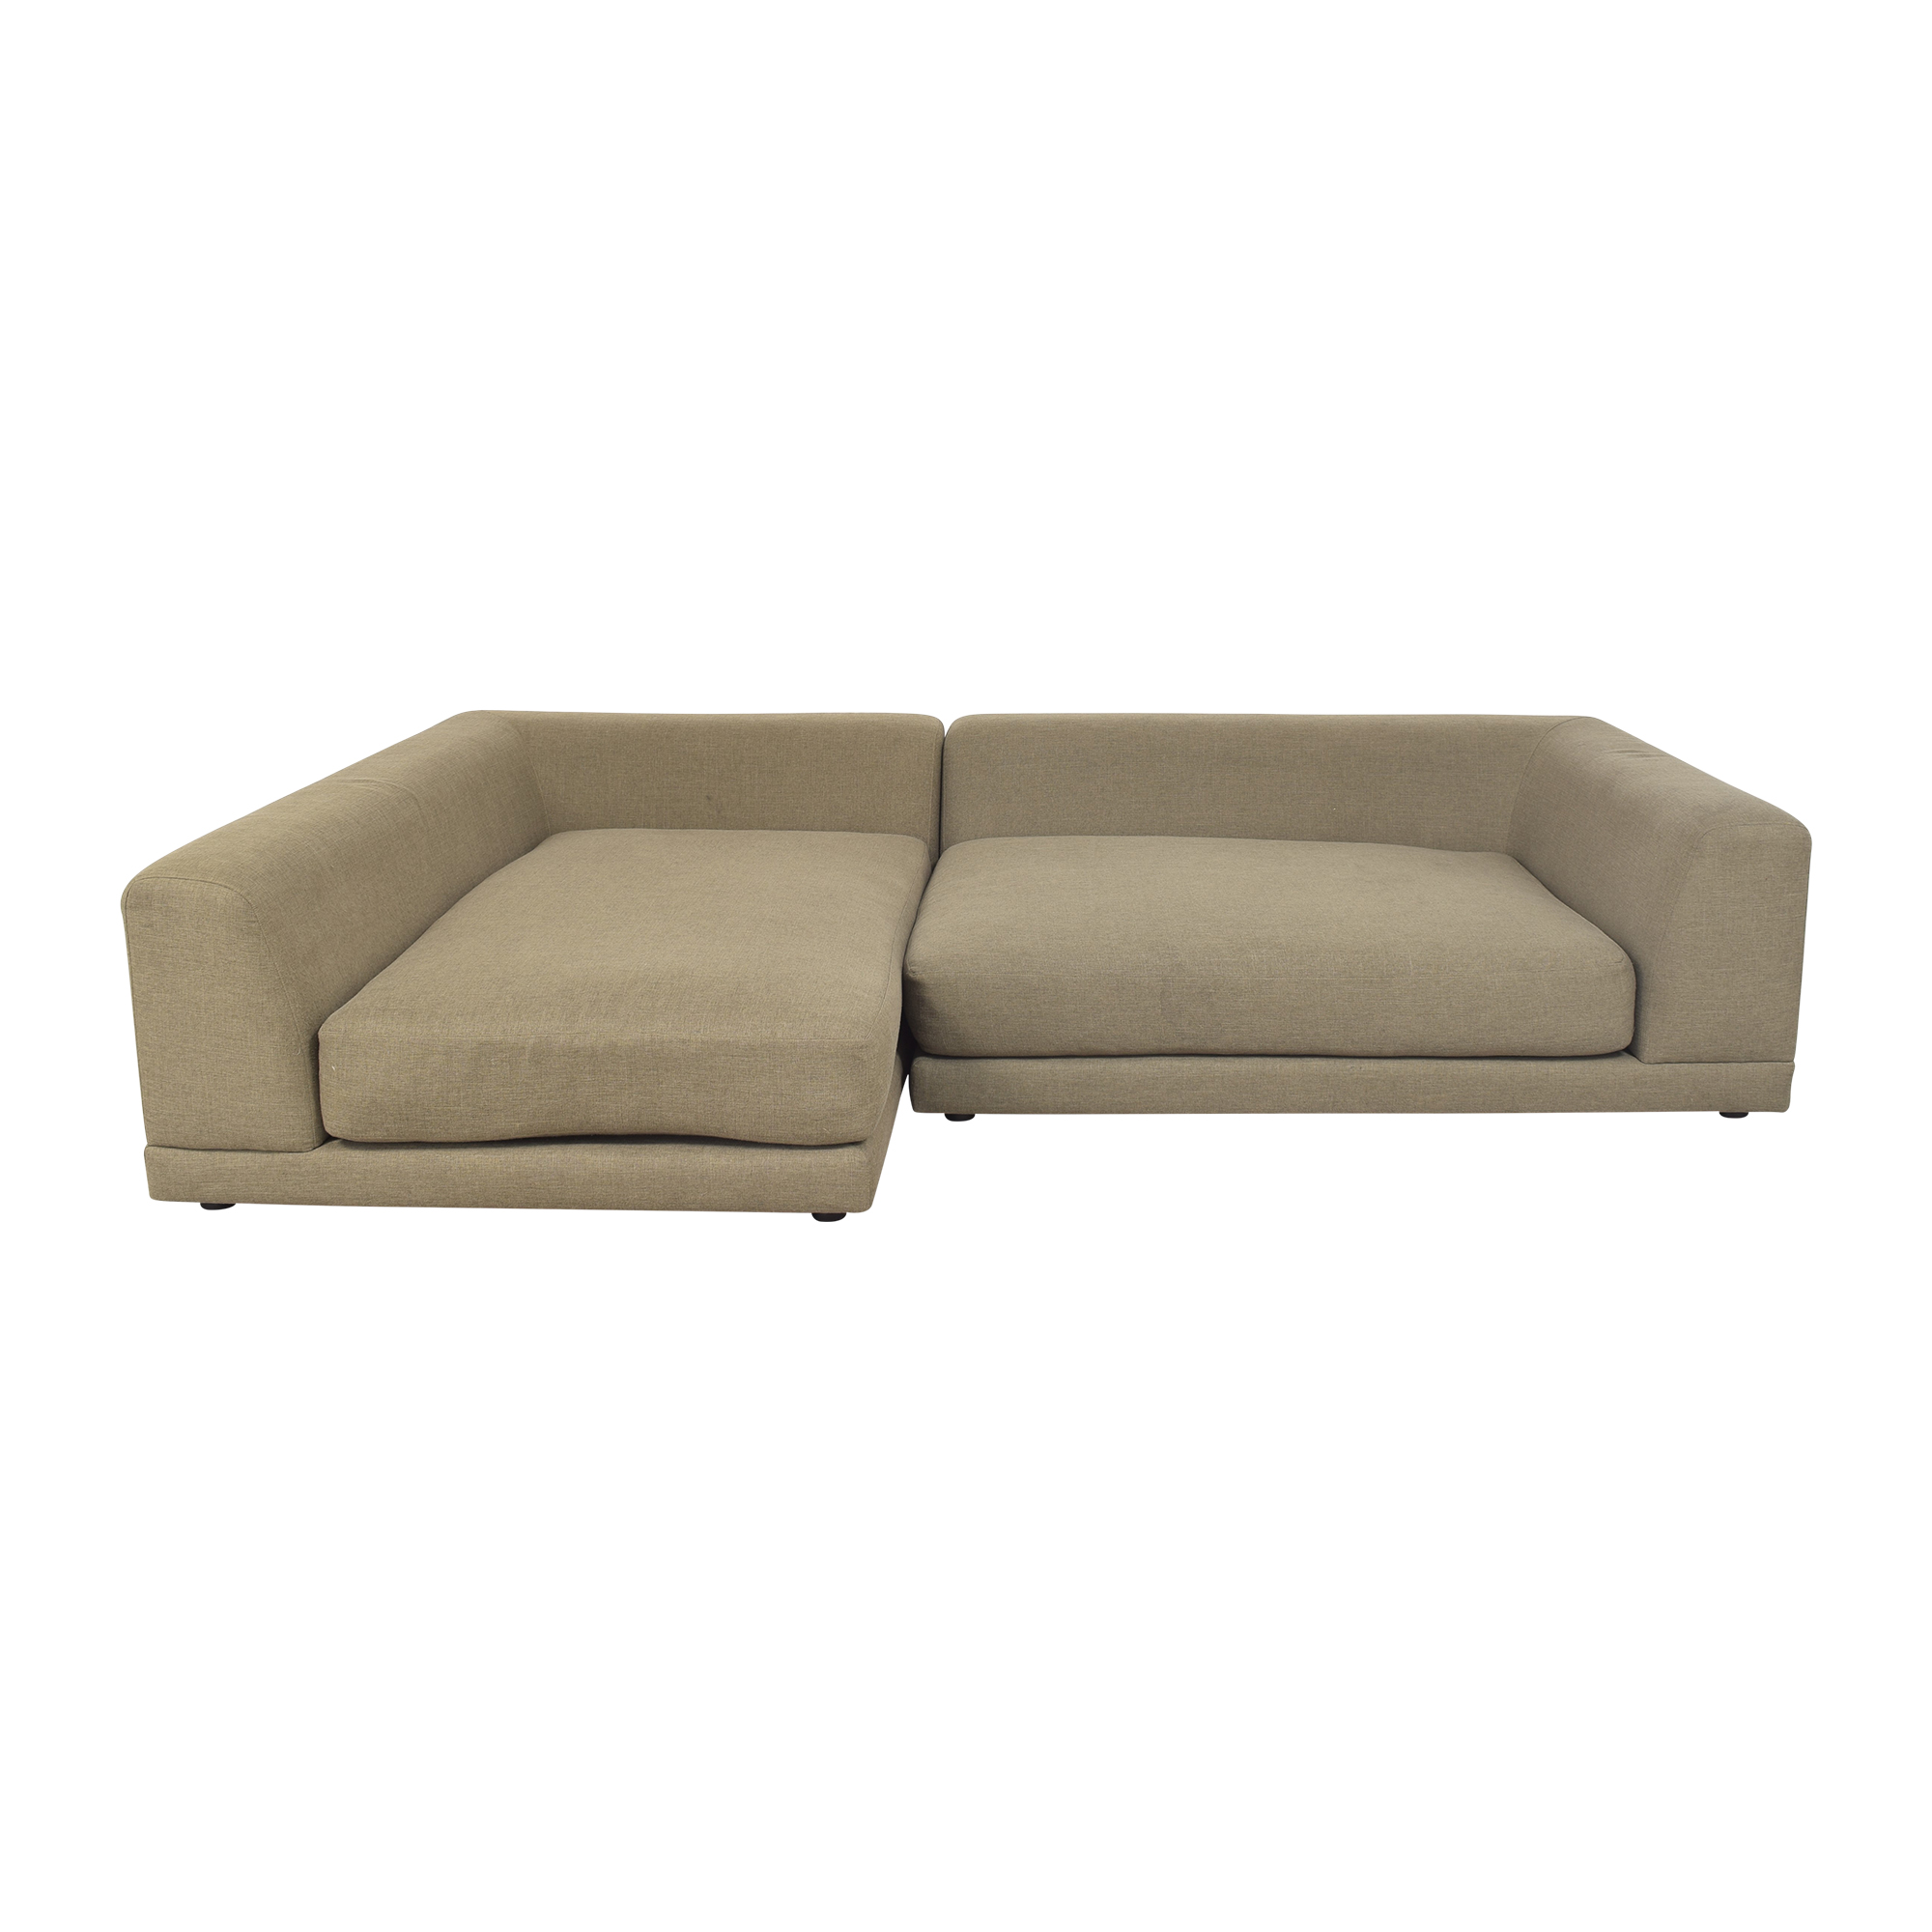 CB2 CB2 Uno Two Piece Sectional Sofa grey